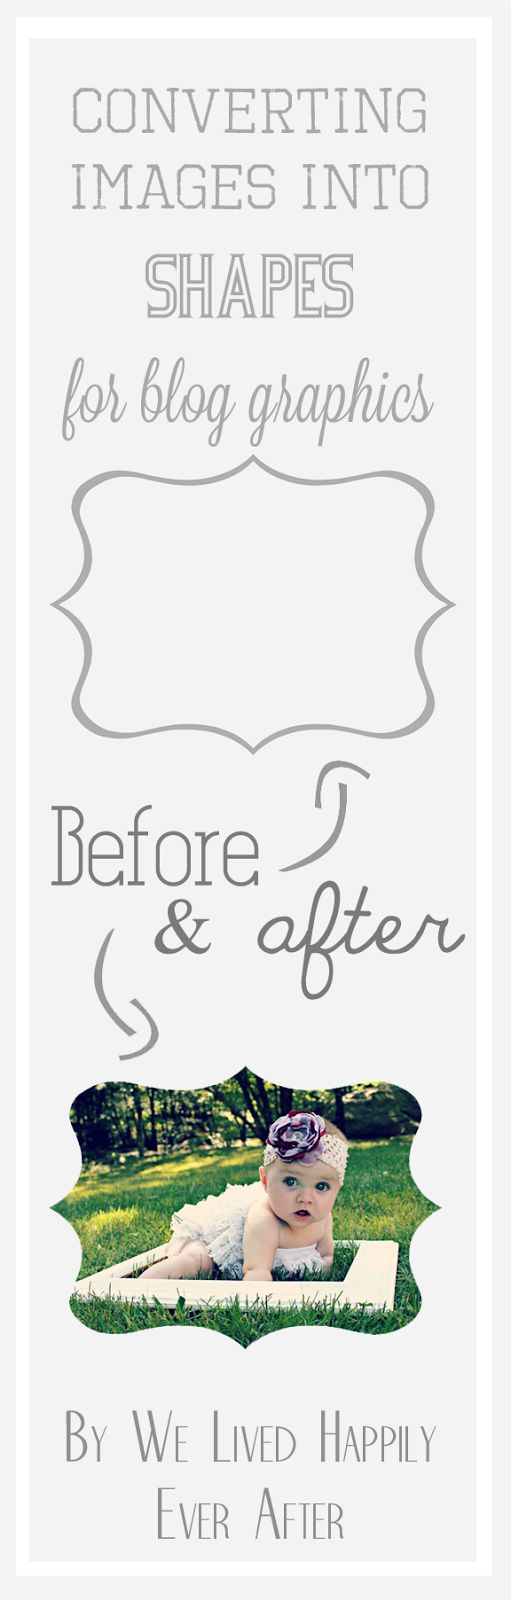 We Lived Happily Ever After: Converting Images into Shapes for Blog Graphics (Using Photoshop)